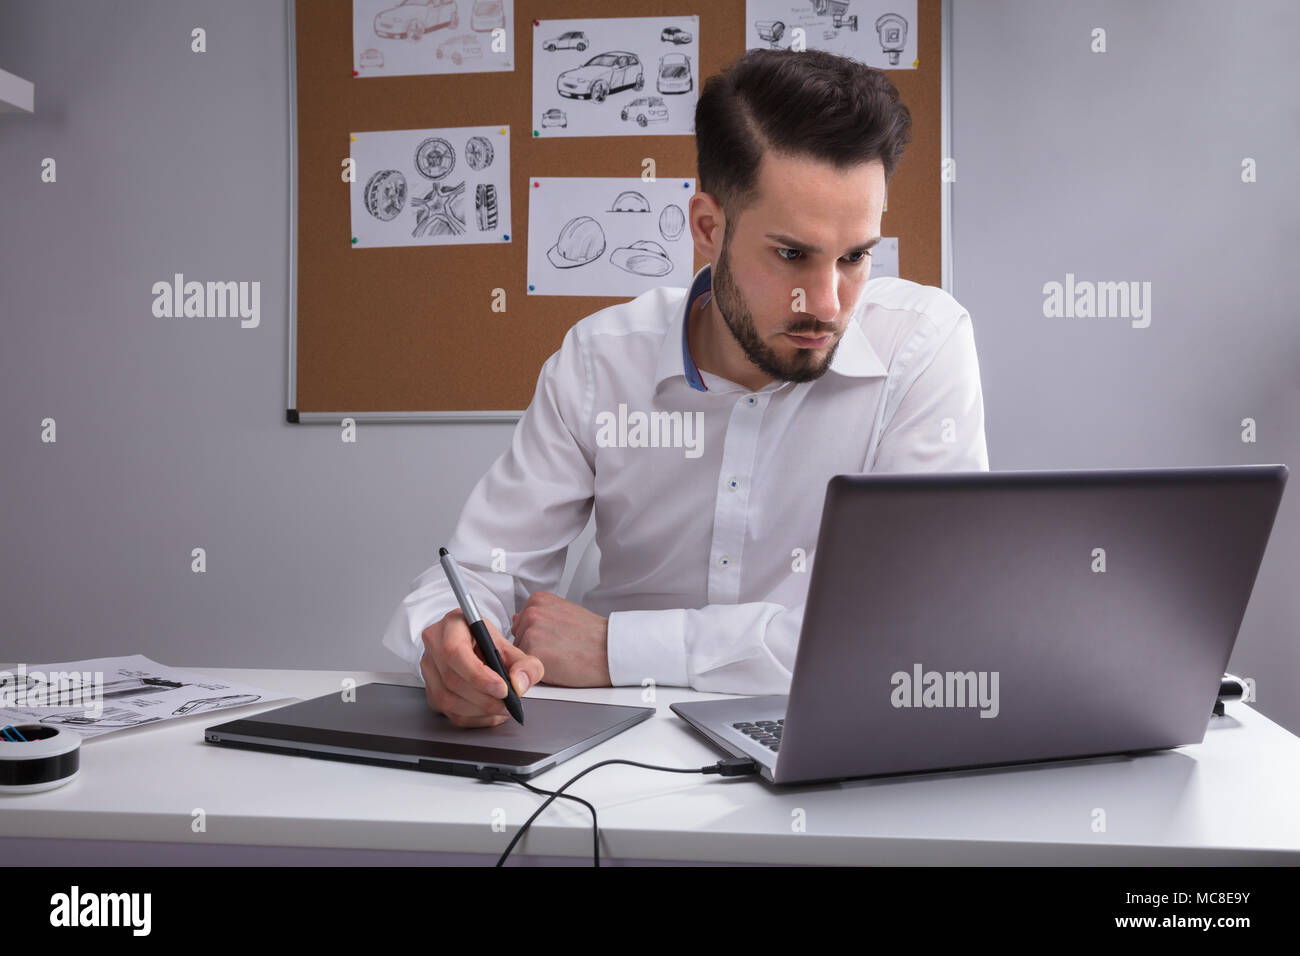 Male Designer Using Graphic Tablet Working On Laptop - Stock Image